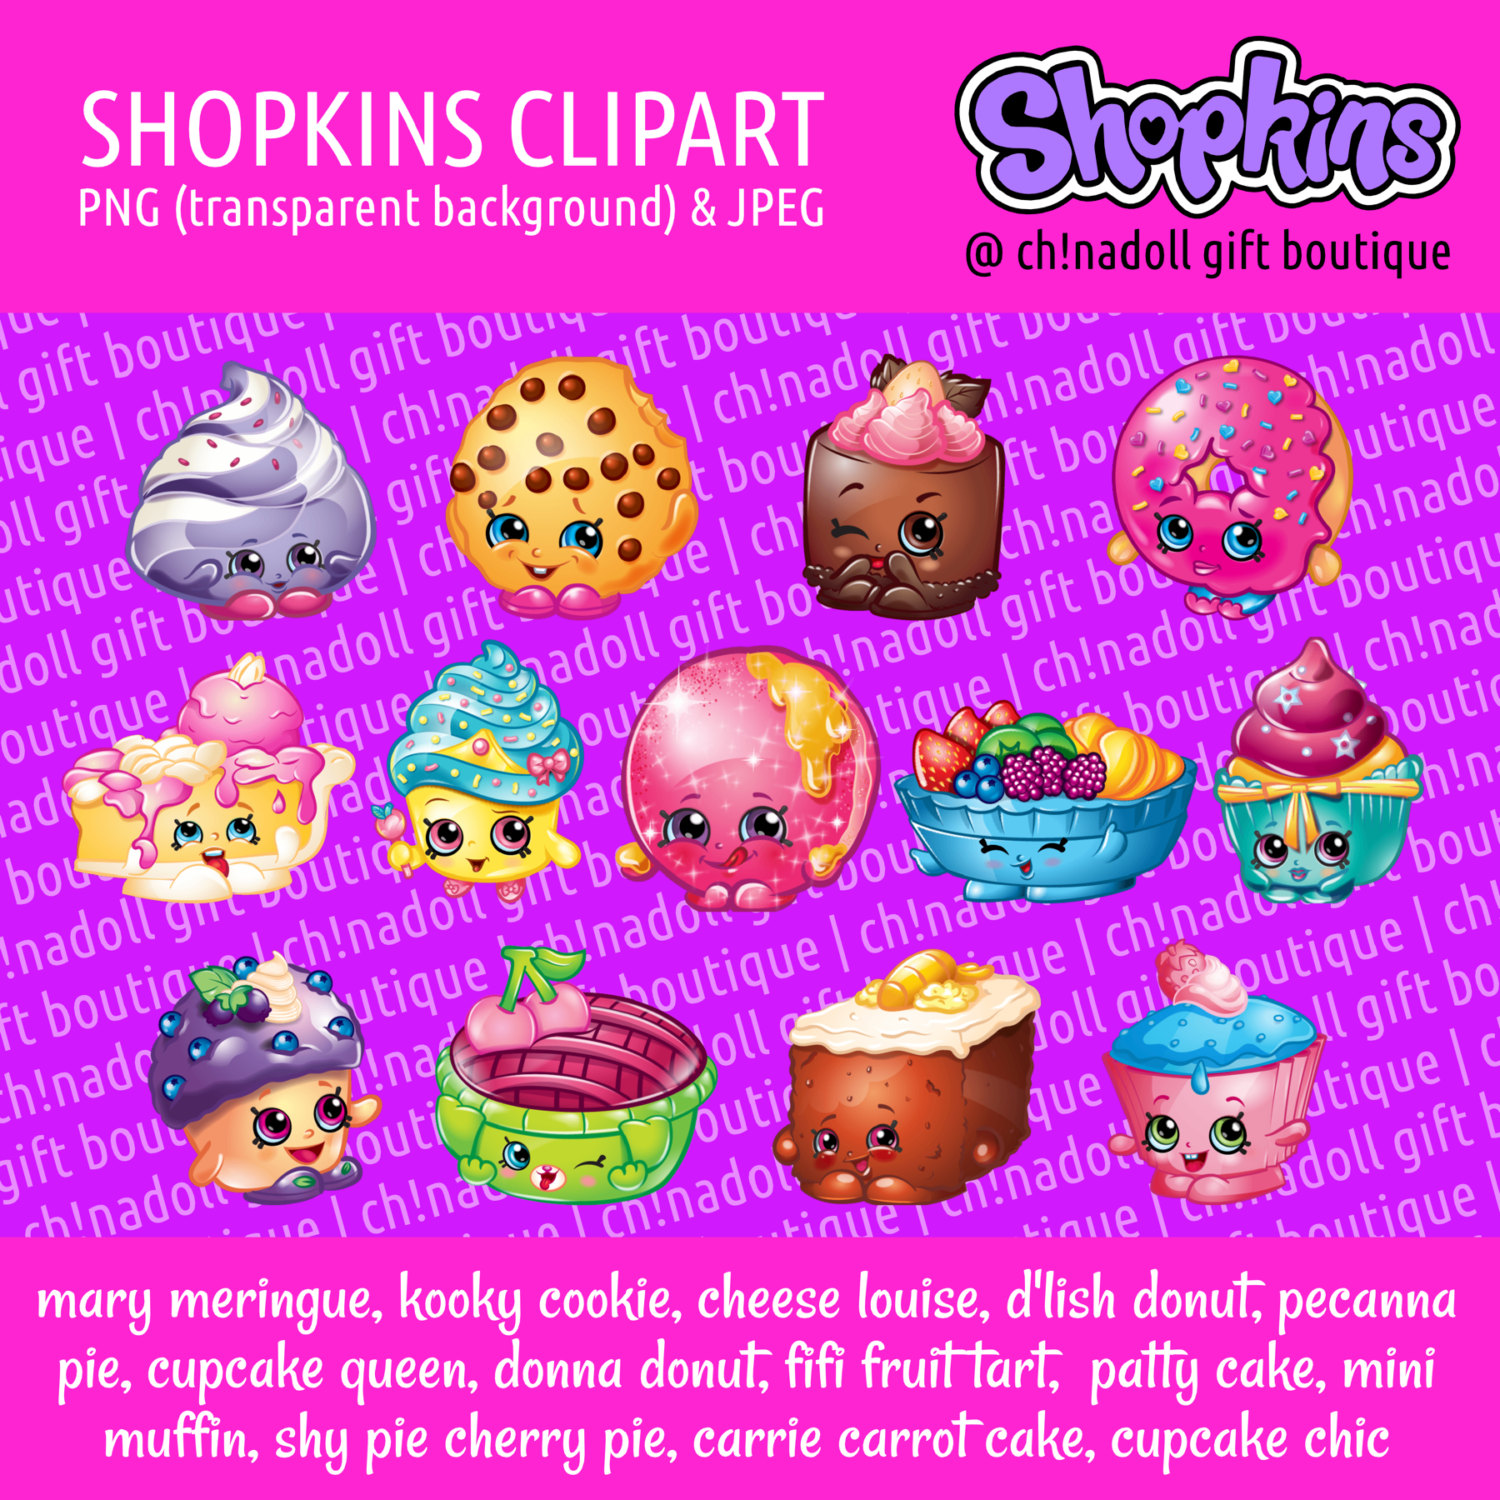 Shopkins clipart cupcake queen black and white download Shopkins clipart sweet bakery cupcake queen d'lish black and white download